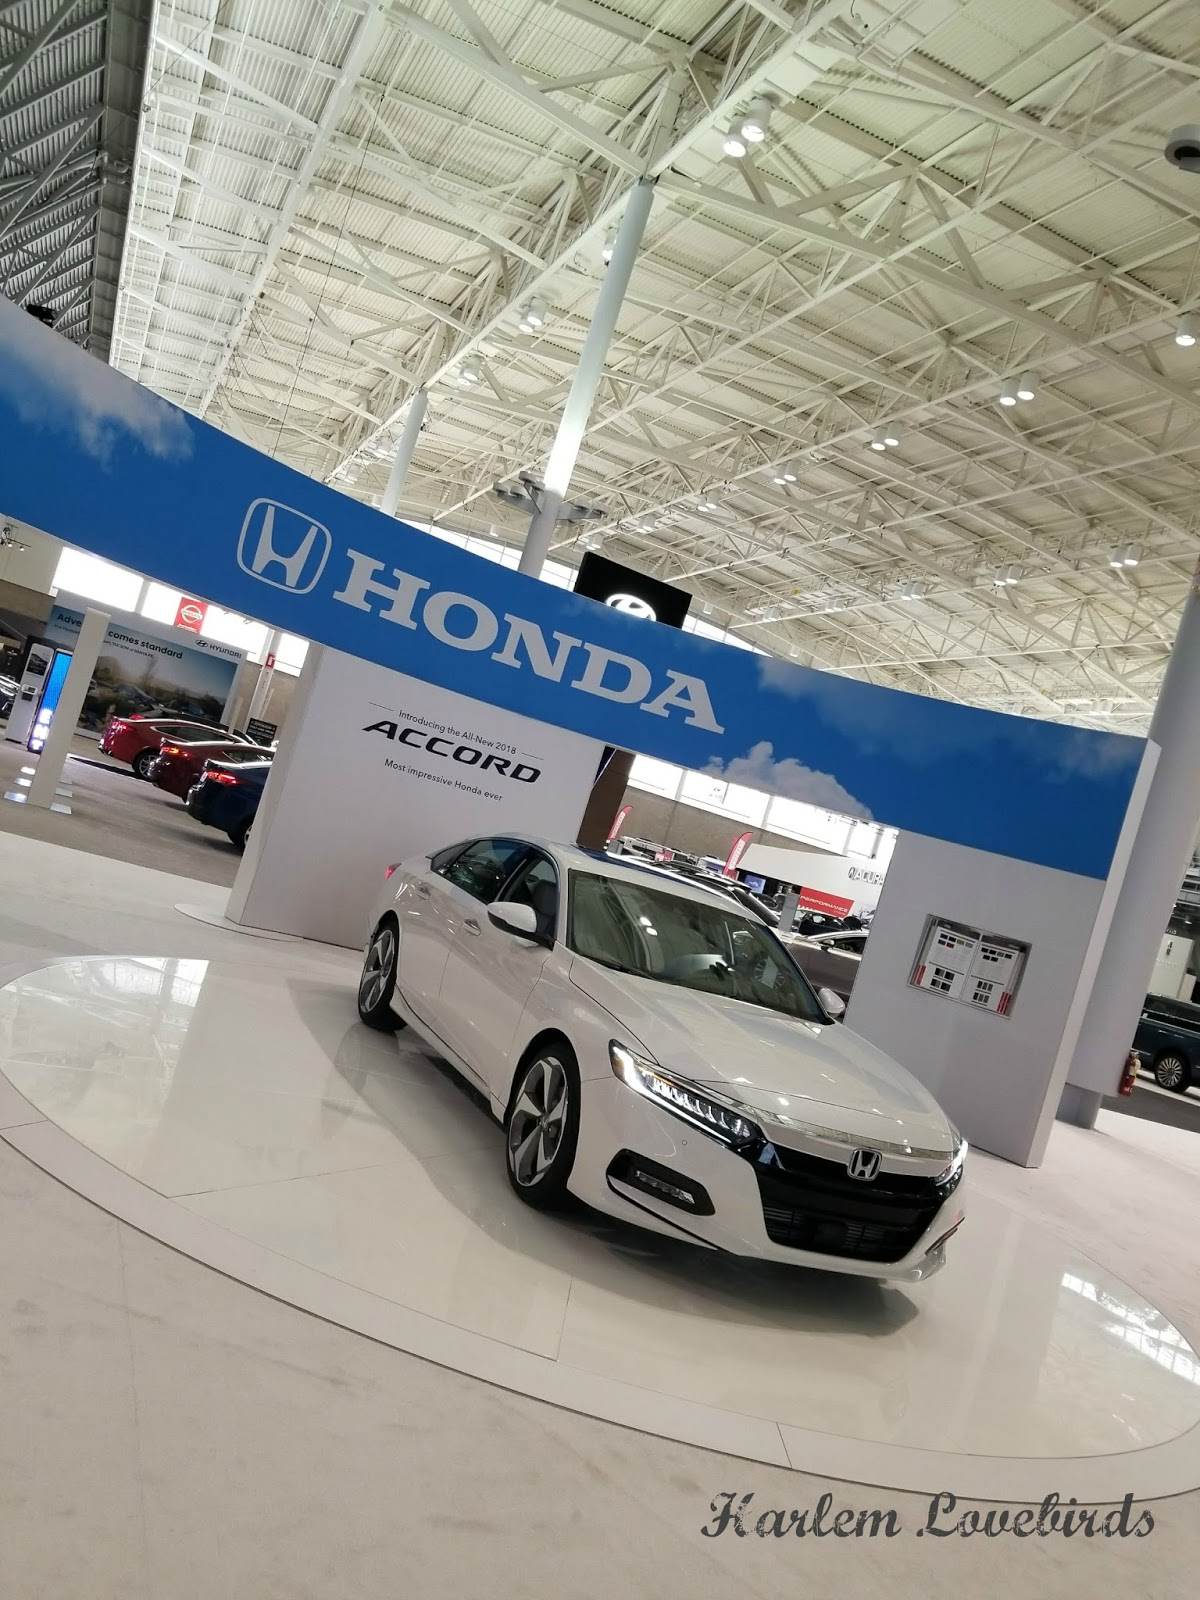 Harlem Lovebirds New England Auto Show With Honda Clarity - New england car show boston